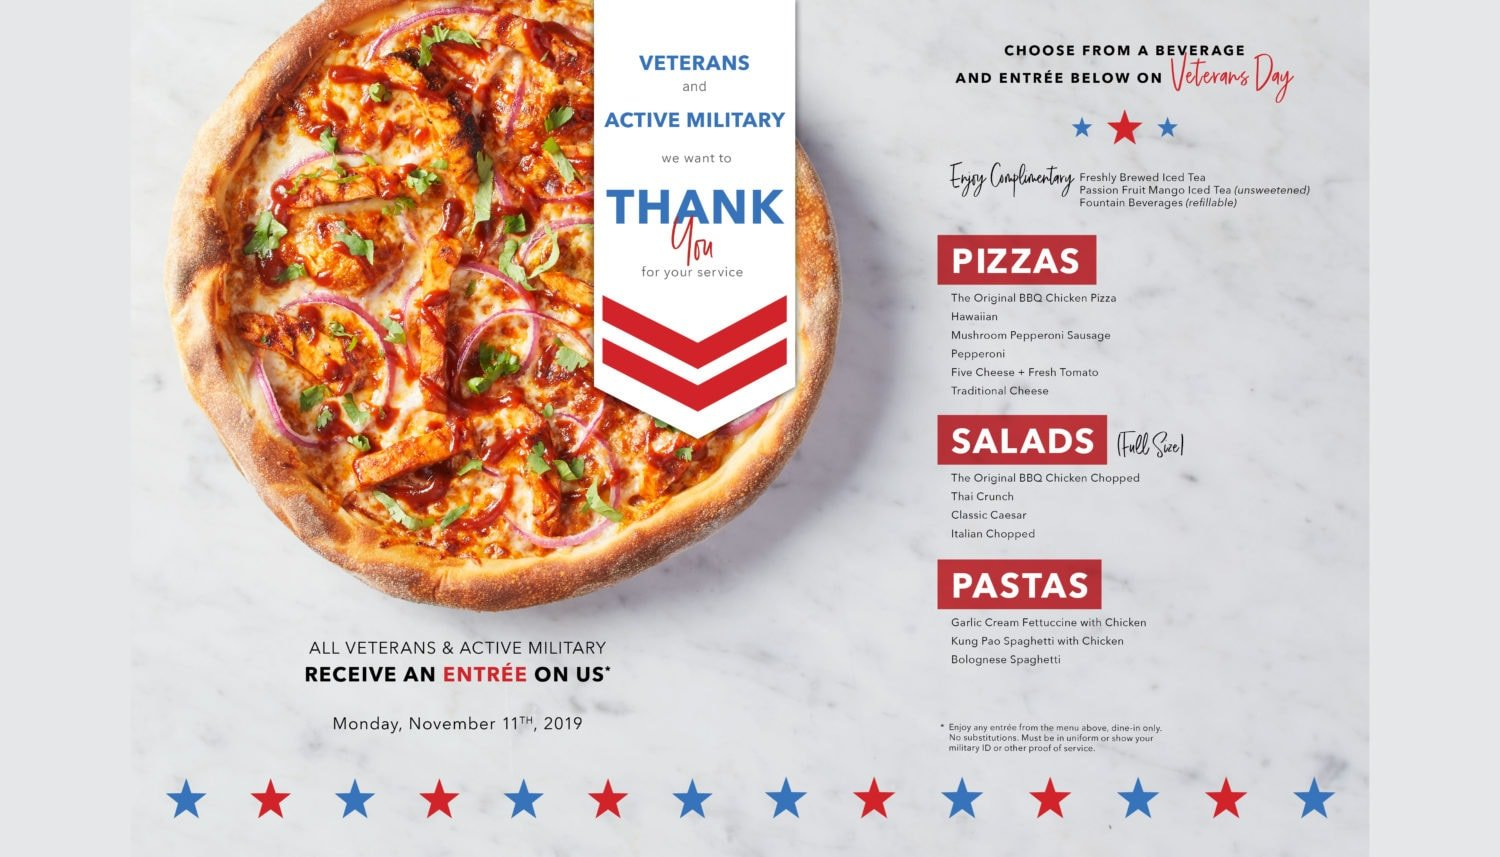 2019 Veterans Day free meals